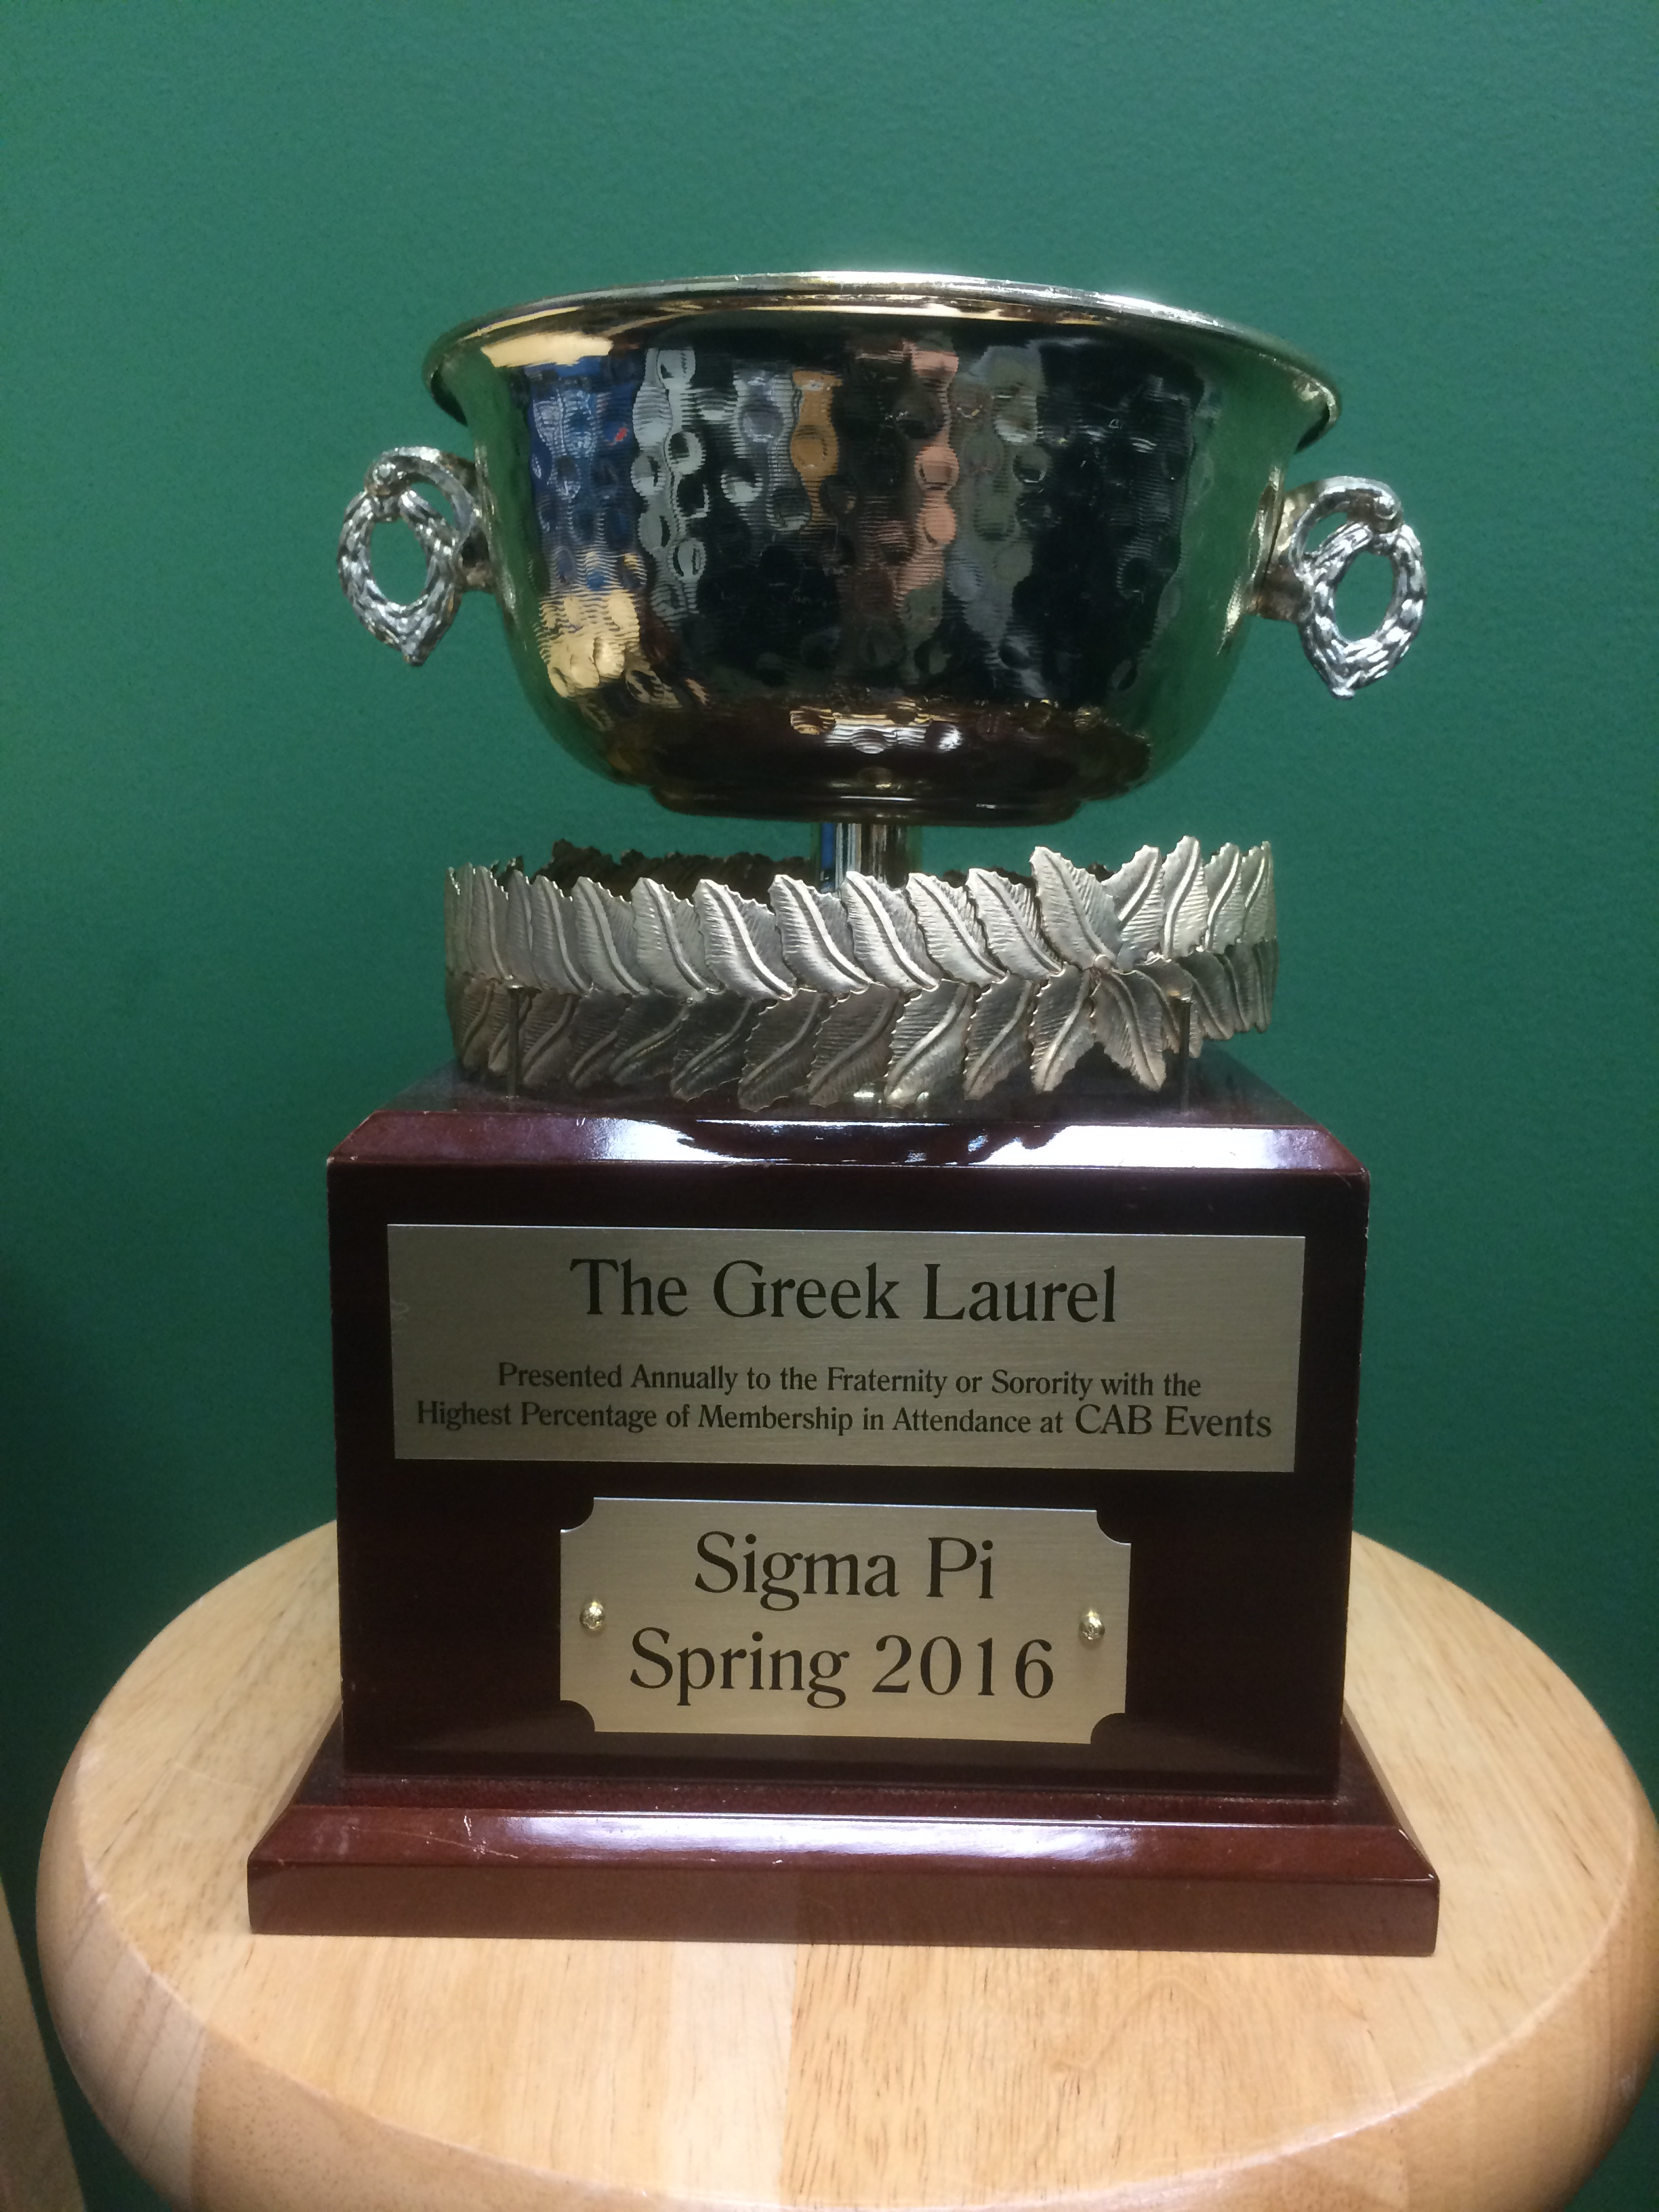 Sigma Pi awarded Fall 2016 Greek Laurel